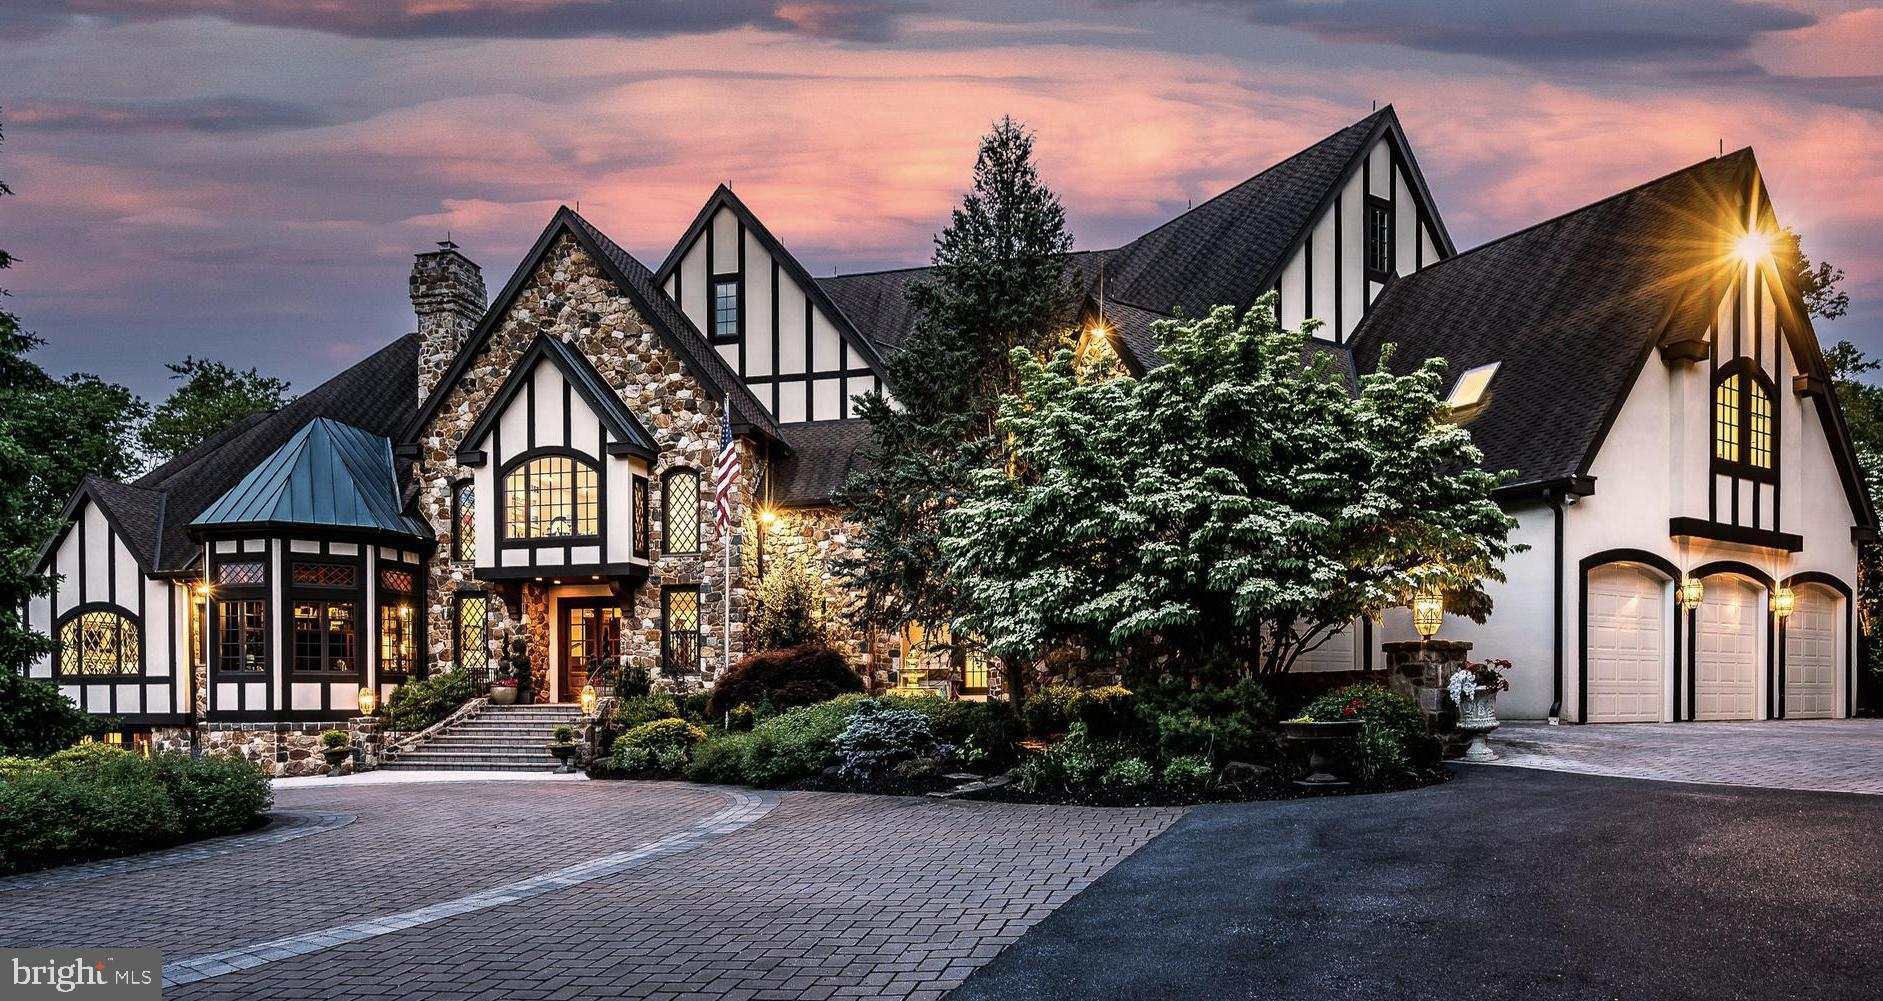 One of the most remarkable private executive estates in the Delaware Valley, this exquisite 18,000+/- square foot, 6 bed 11+ bath Tudor manor home estate on over 7 acres in Unionville-Chadds Ford School District, is now available. With secured privacy and hand crafted luxury throughout, the property has been updated by the present owners to the highest standard. A breathtaking foyer welcomes you to the grand formal Living Room with dramatic fireplace and custom cabinetry. The soaring vaulted ceilings with floor to ceiling windows showcase private views of the manicured grounds. There is a stunning masterpiece Kitchen and Butler Pantry with an additional Chef's Kitchen. The Master Suite with his/her separate baths and Walk-in Closets, and stunning Study is an oasis within an oasis. The fully finished Lower Level provides 6,000+/- square feet of living space and is replete with entertainment areas, a Game Room, two Exercise Rooms, Sauna/Steam Rooms, Wine Cellar and amazing 12 person Home Theater. The Upper Level offers four bedroom suites and a fully equipped guest suite. There is an elevator and multiple staircases to easily move between all floors. In addition to the main home, two ancillary buildings occupy the grounds: a 3-room Office Studio and a Pool House with small kitchen, bath and more. These additional spaces lend themselves to offering a family compound or they would be ideal for conducting your business from home. For the car enthusiast, there are four attached and a further seven detached garage spaces offering eleven garage spaces in total! The gorgeous Sylvan free form pool is the center of spa-like exterior spaces for entertaining and relaxing with family and friends and are superior to those found at five star resorts. This unsurpassed property is conveniently located with easy access to West Chester, the Main Line, Philadelphia, and Wilmington.